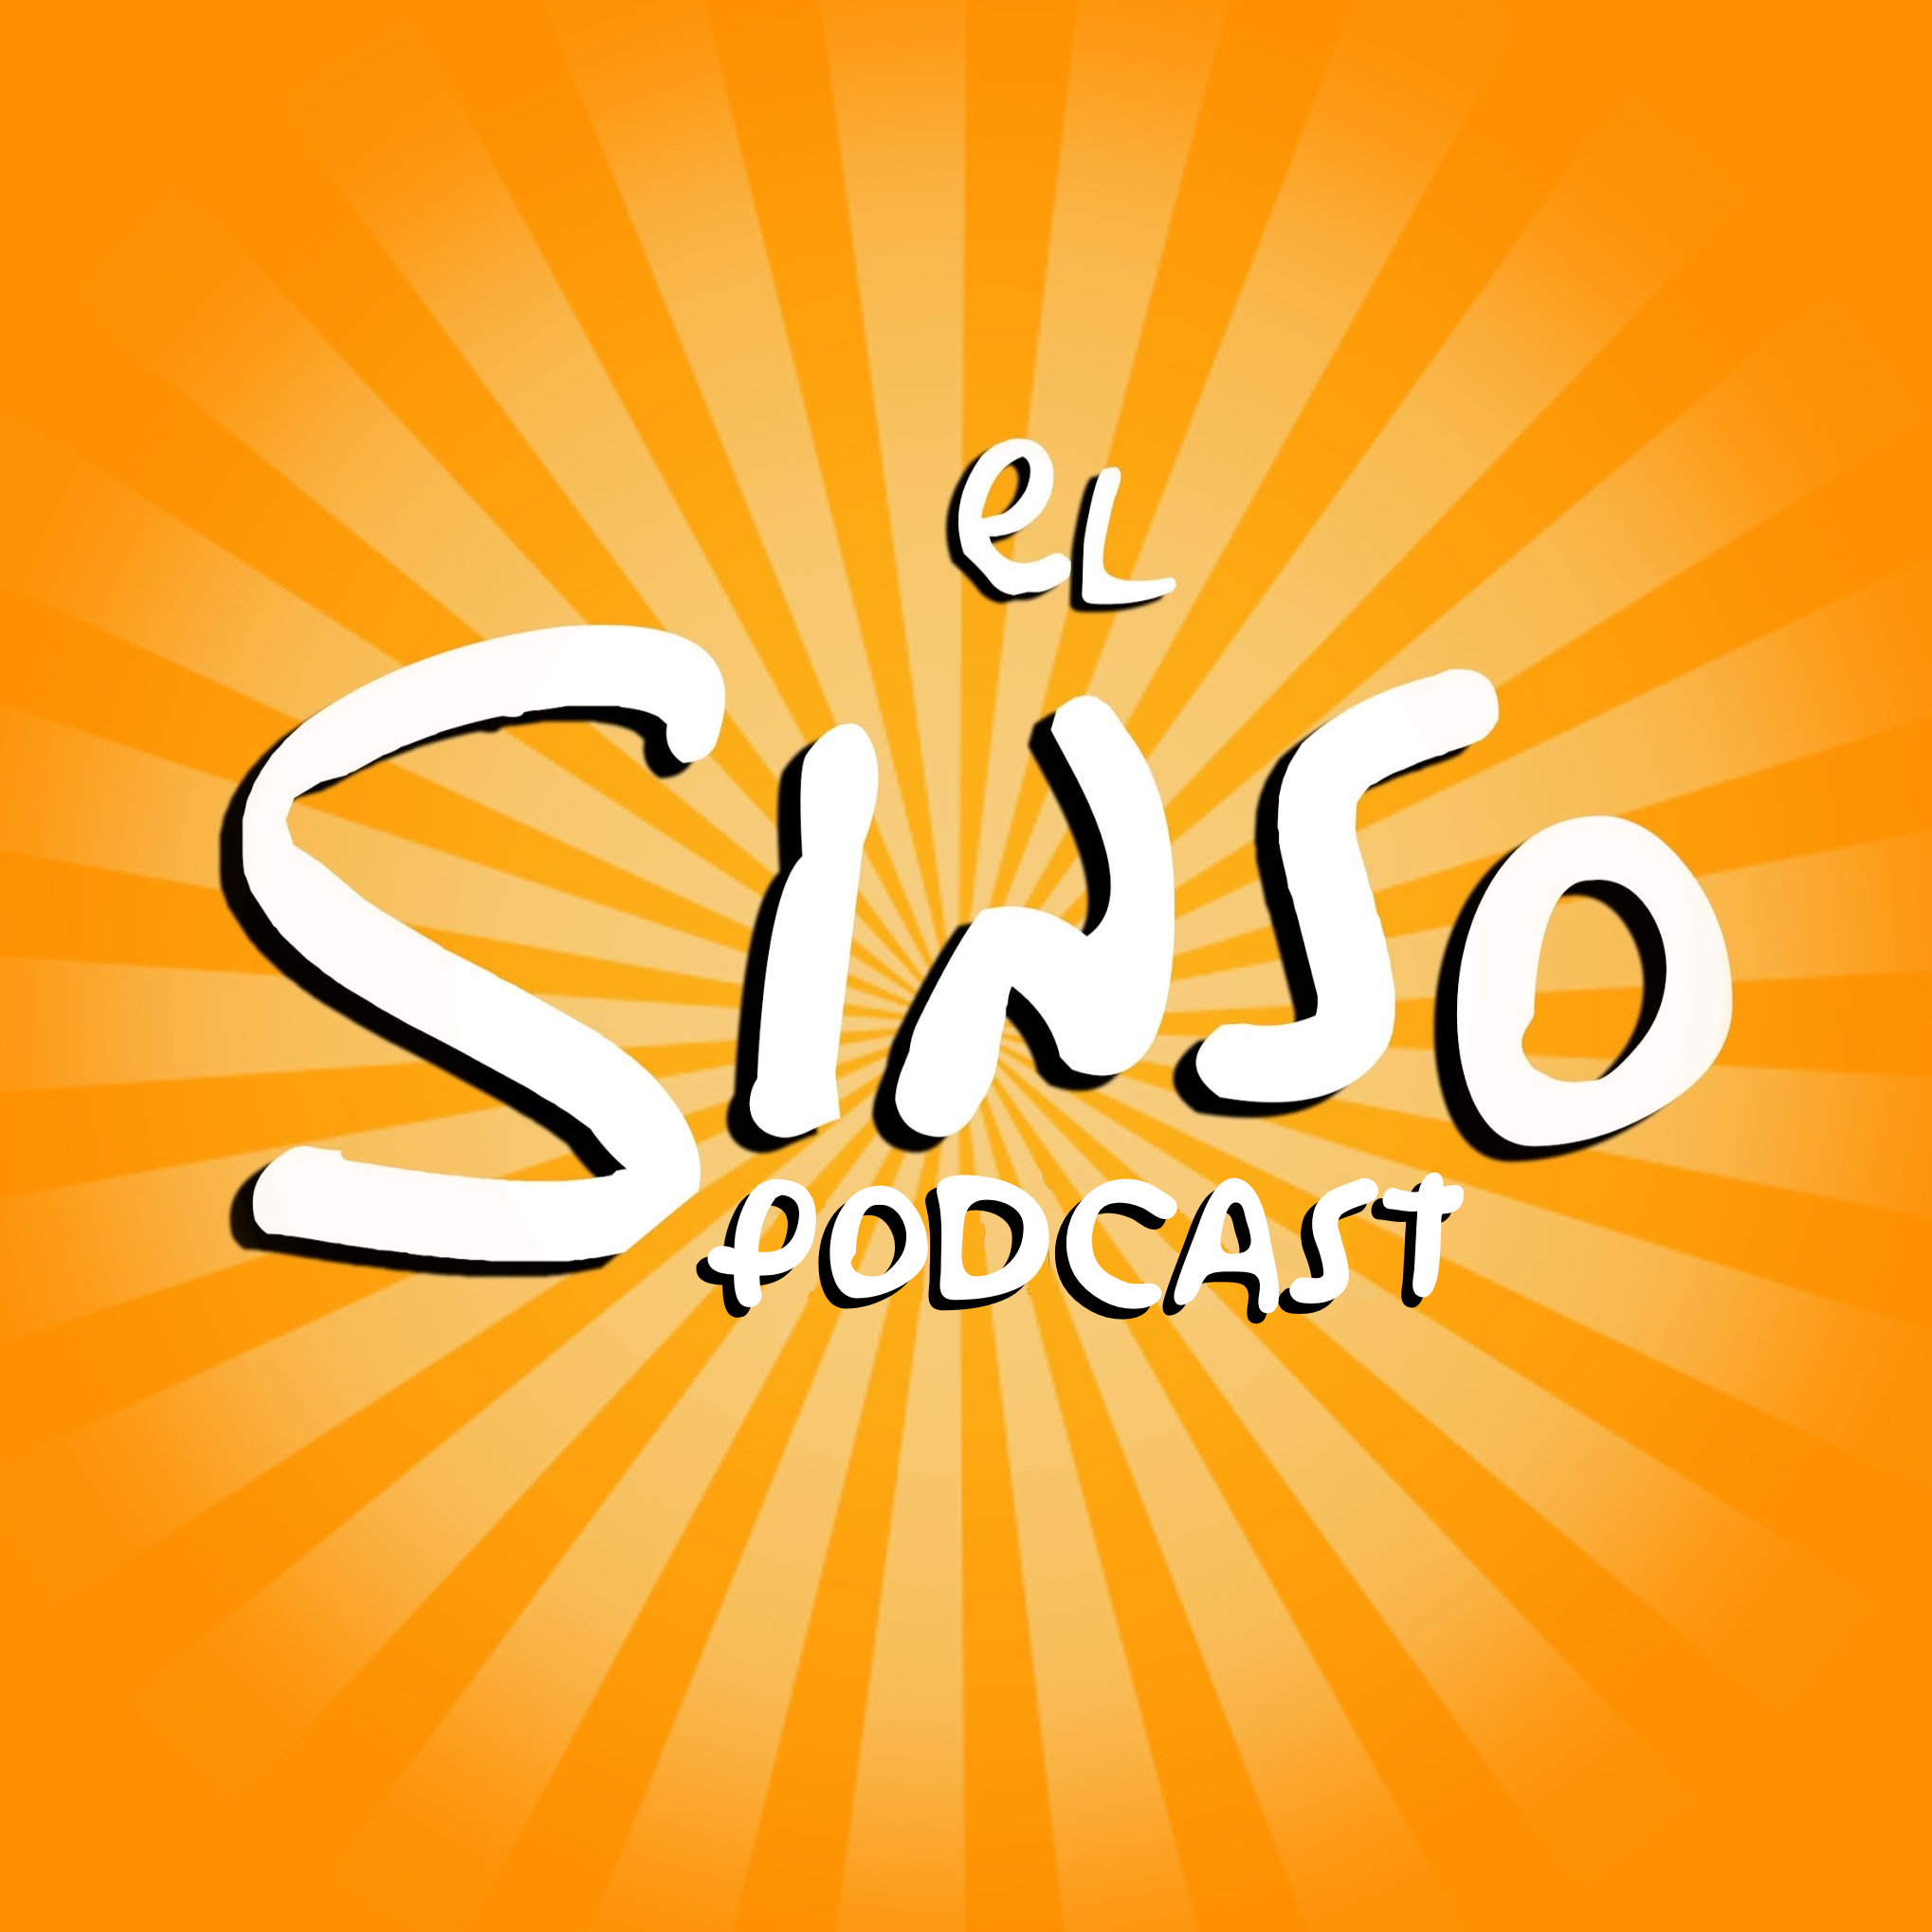 El Sinso Podcast Podcast Listen Reviews Charts Chartable